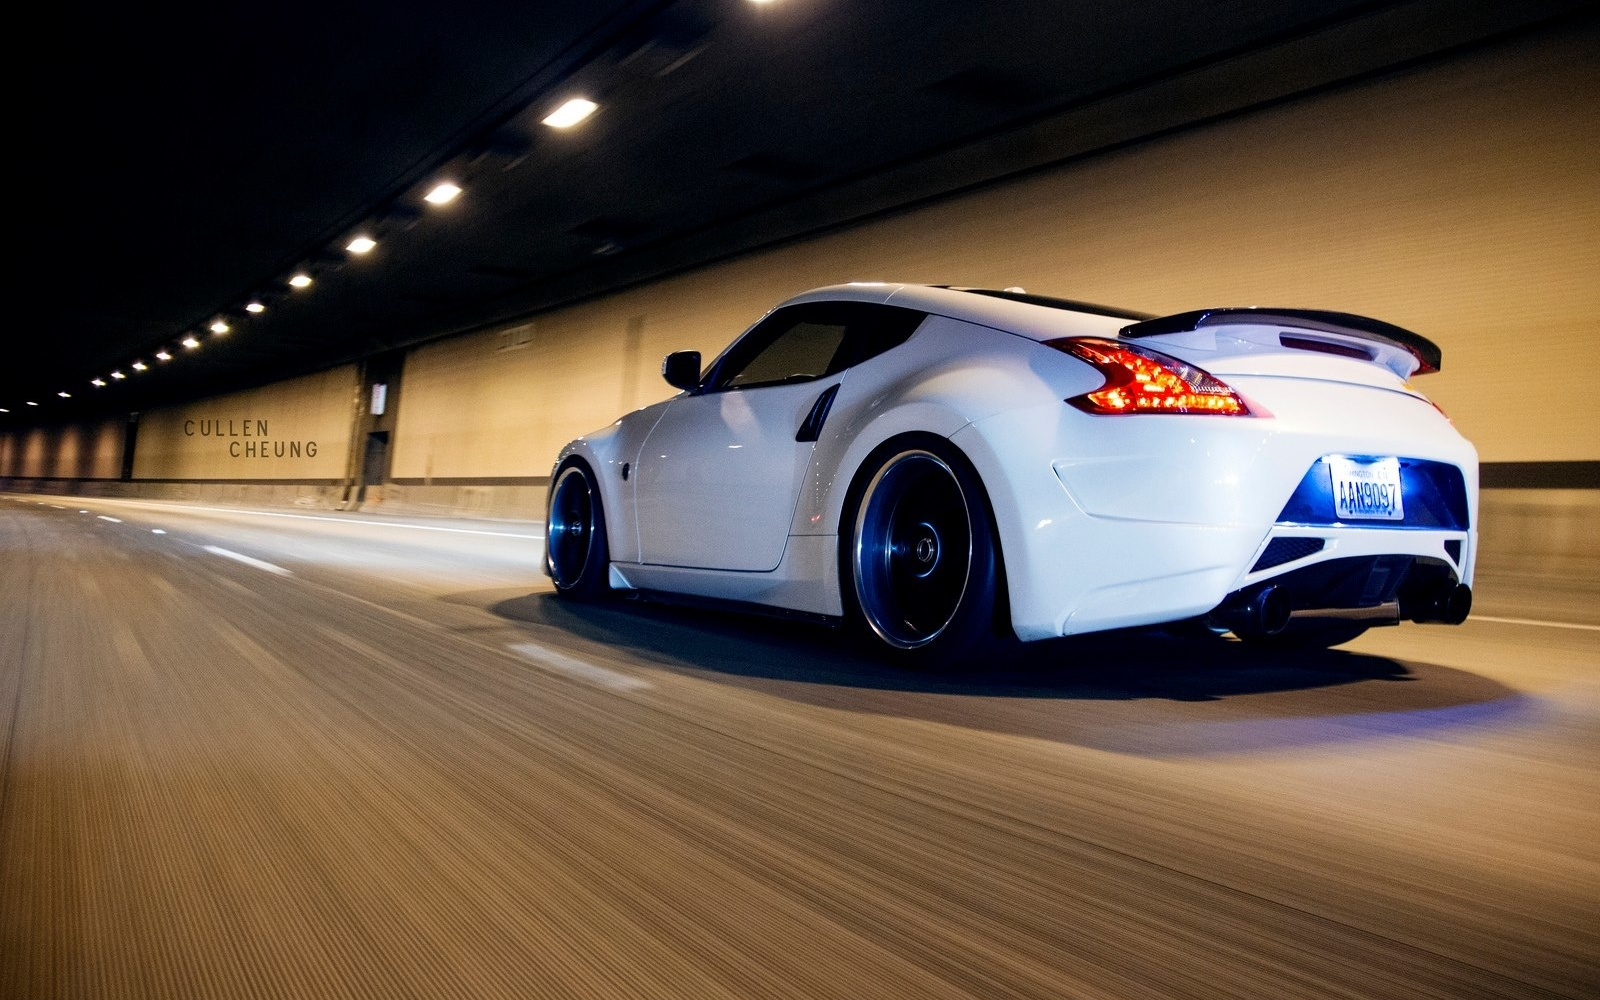 Nissan 370z Computer Wallpapers Desktop Backgrounds 1600x1000 ID 1600x1000